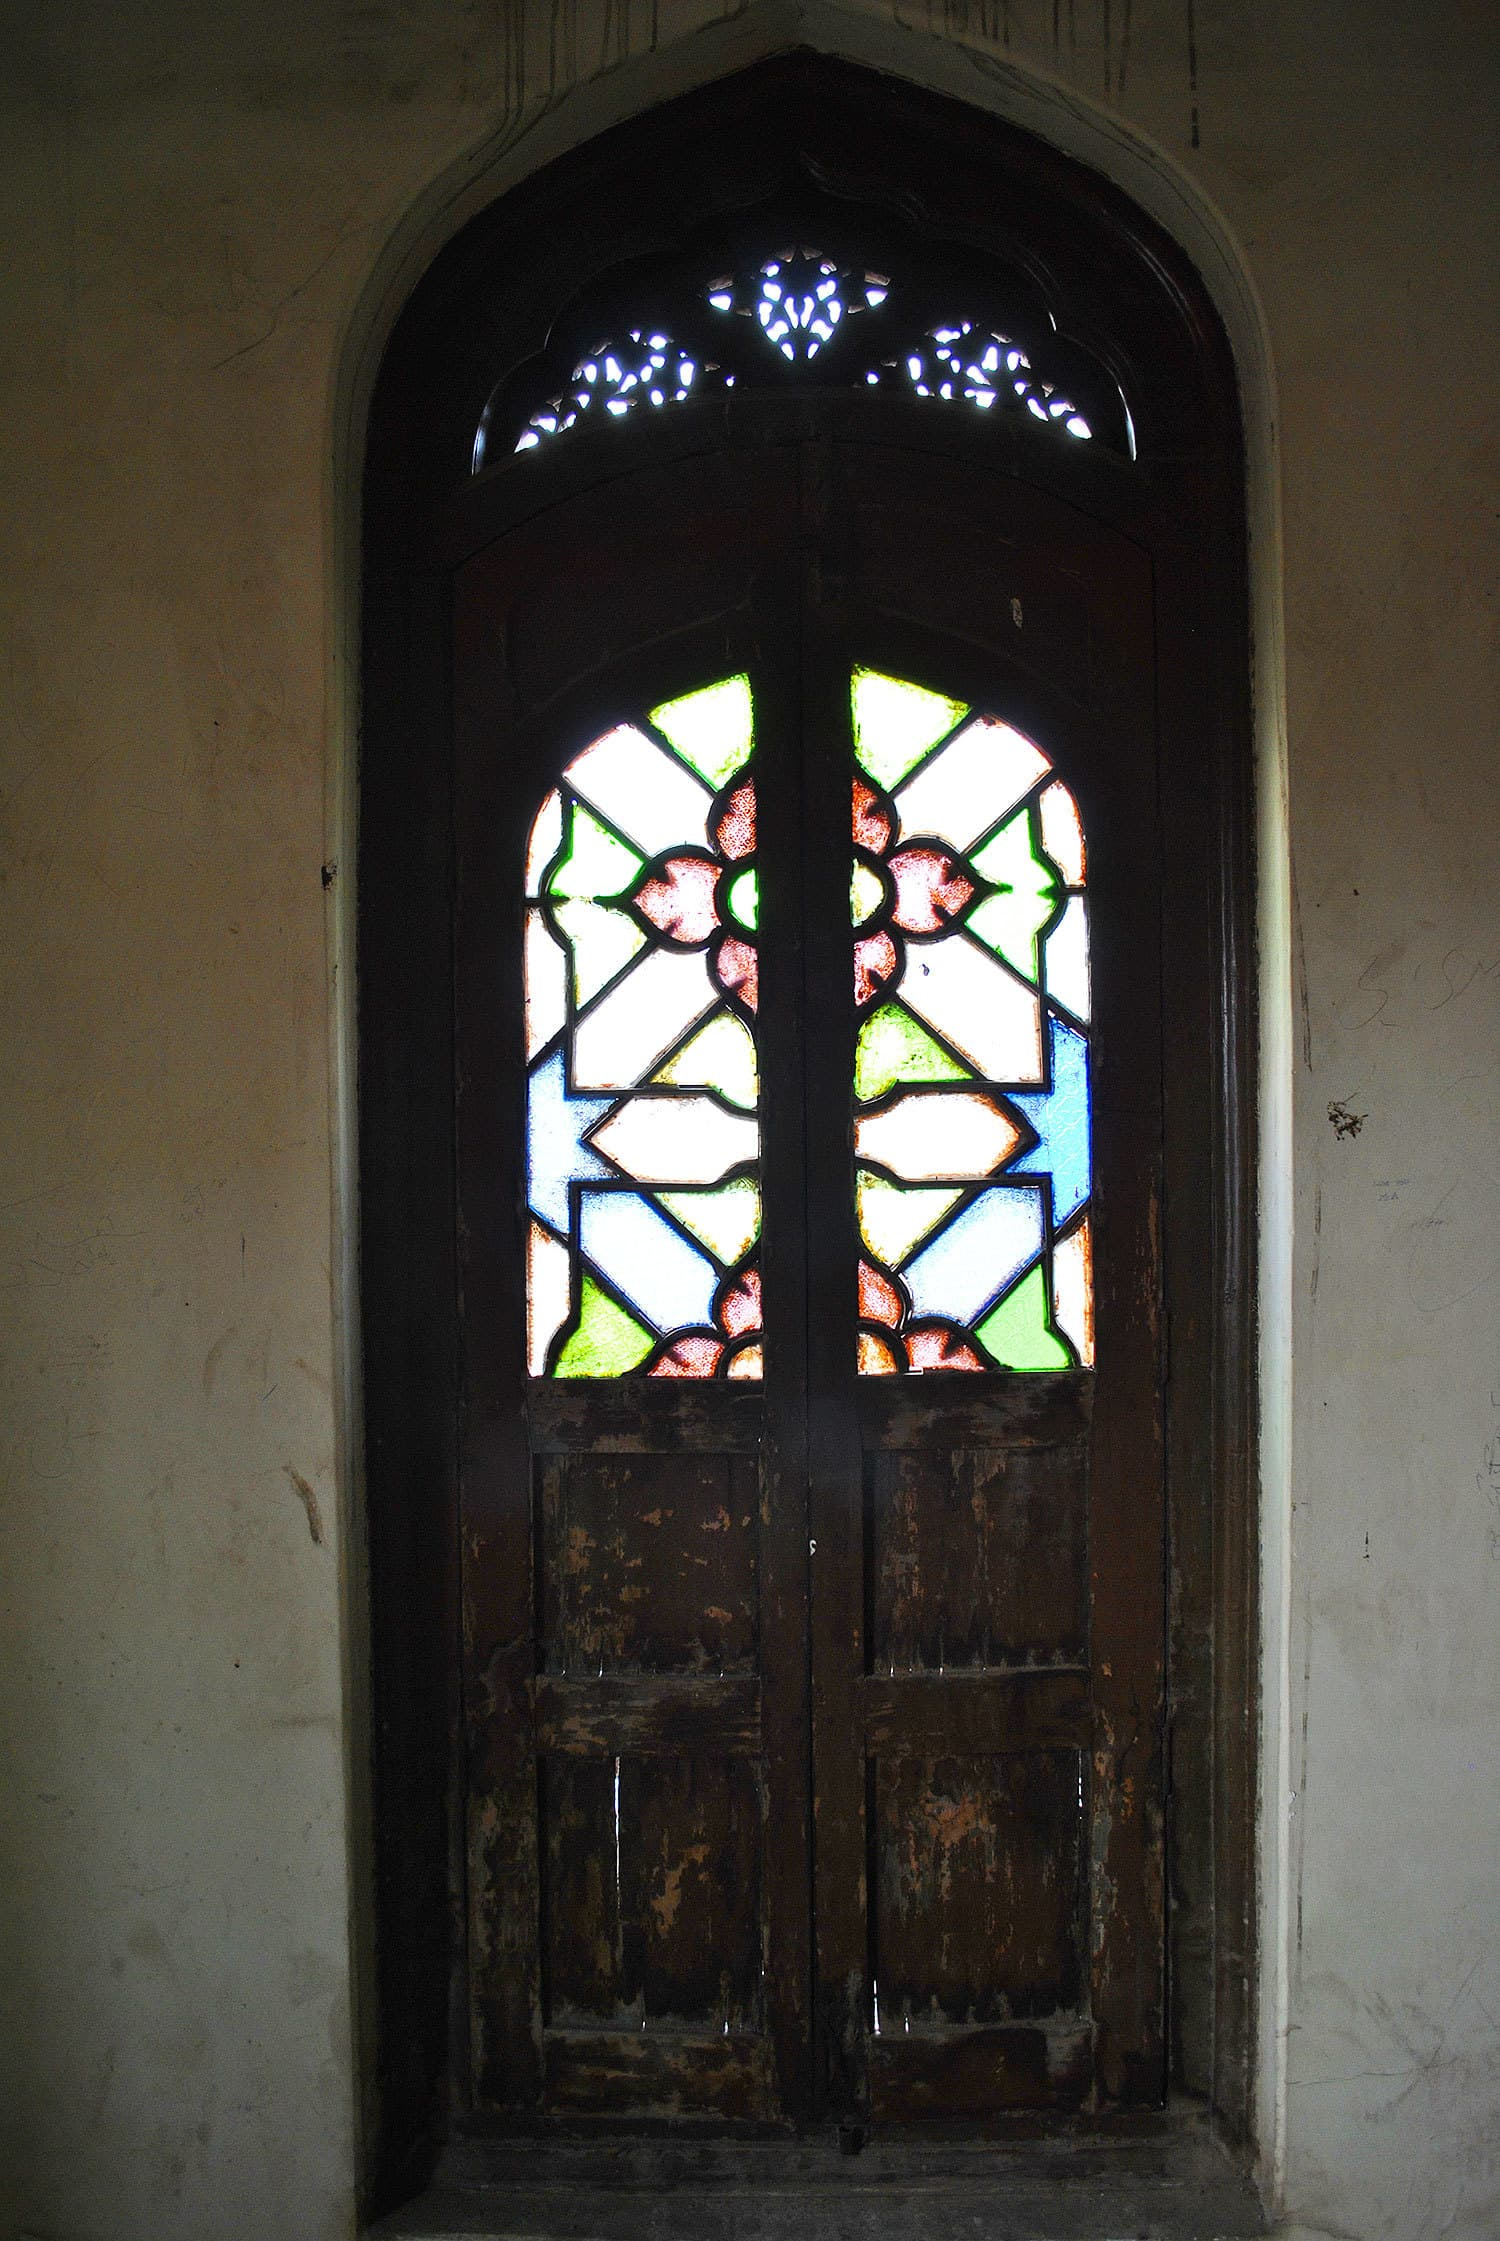 A door with stained glass work.